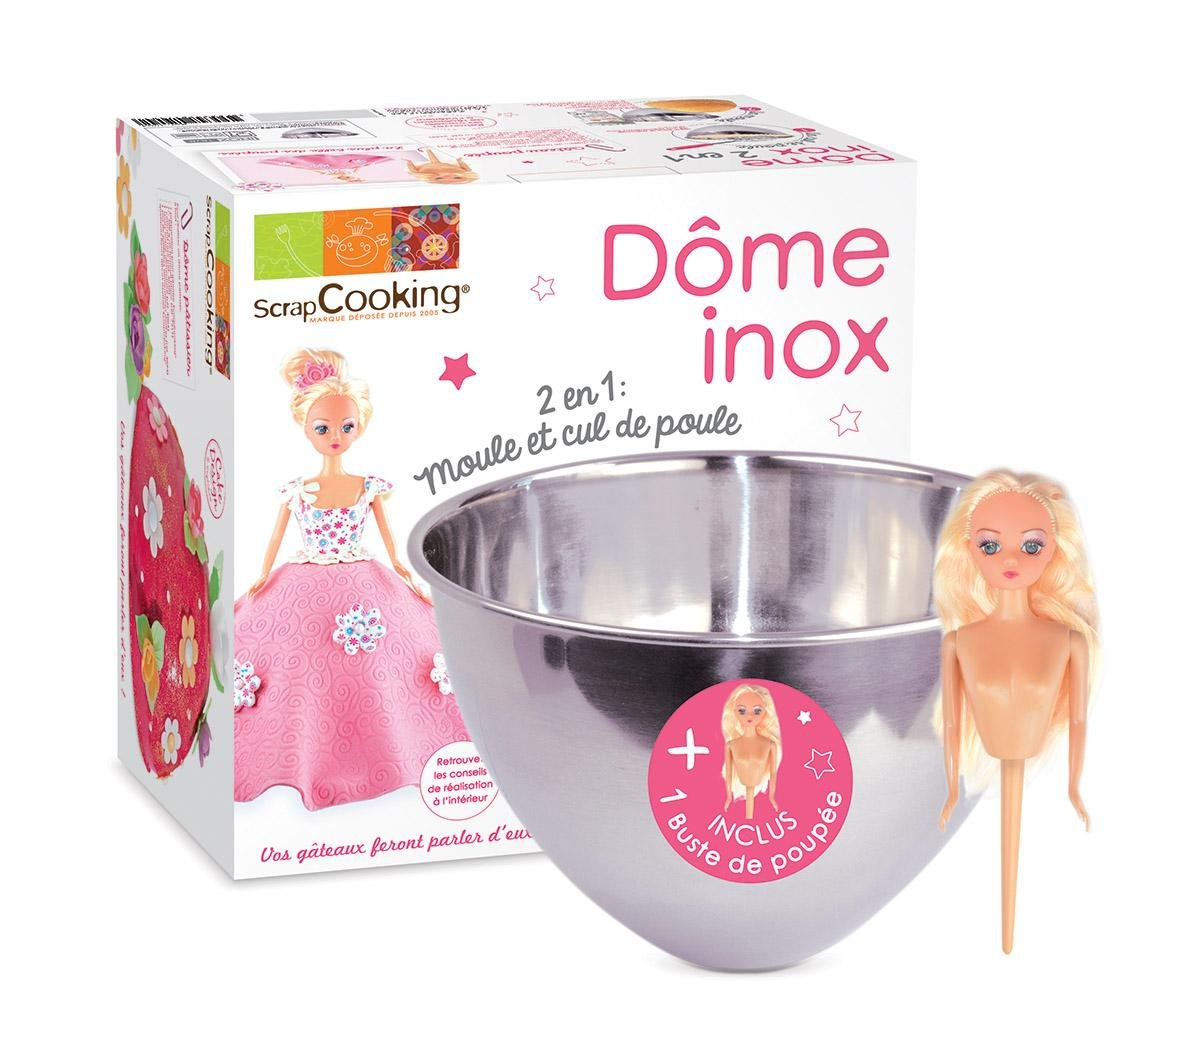 ScrapCooking Stainless Steel Mixing Bowl with Doll Pick, Silver